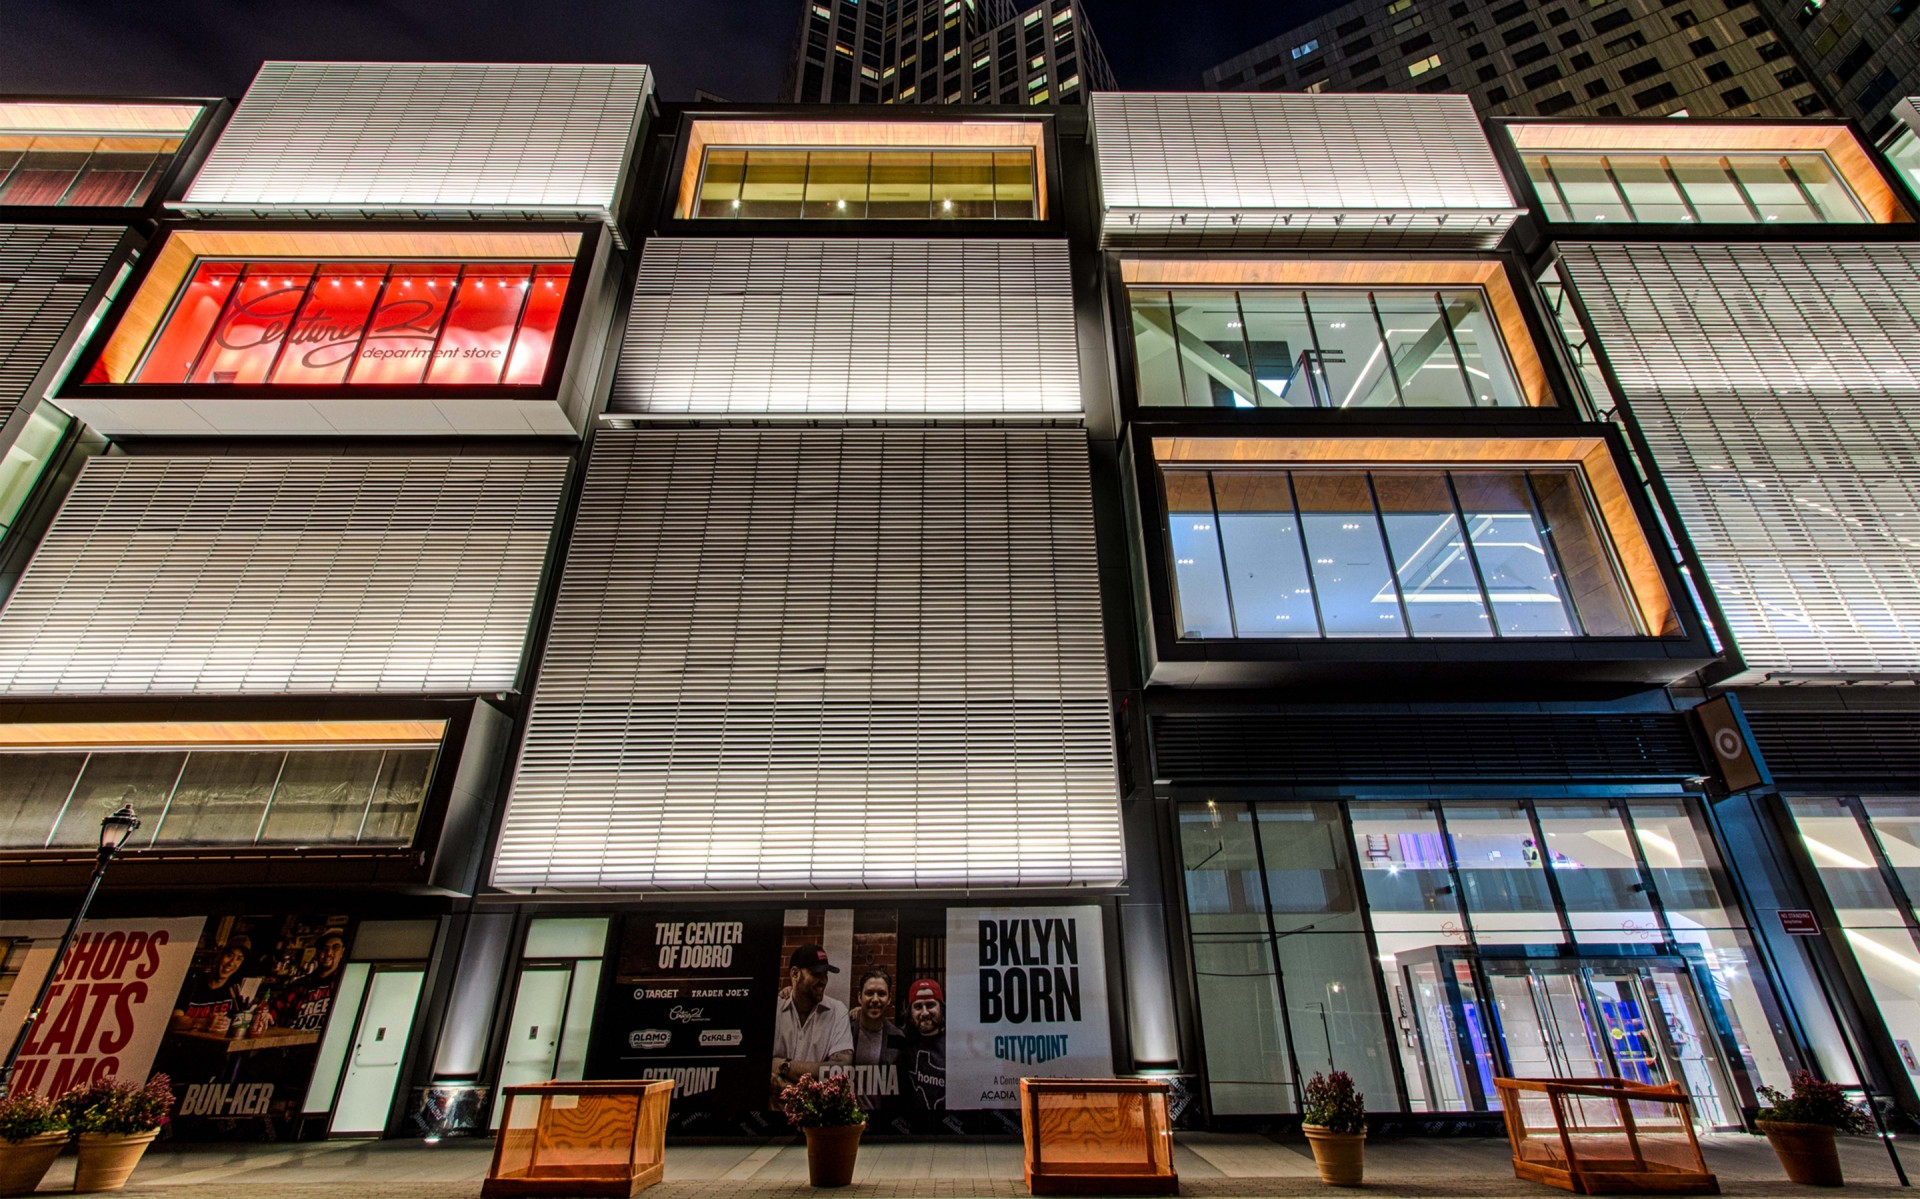 The Lumenfacade luminaires supplied the foot-candle coverage needed on such a tall building while remaining discreetly integrated with the structure. – Ryan Fischer